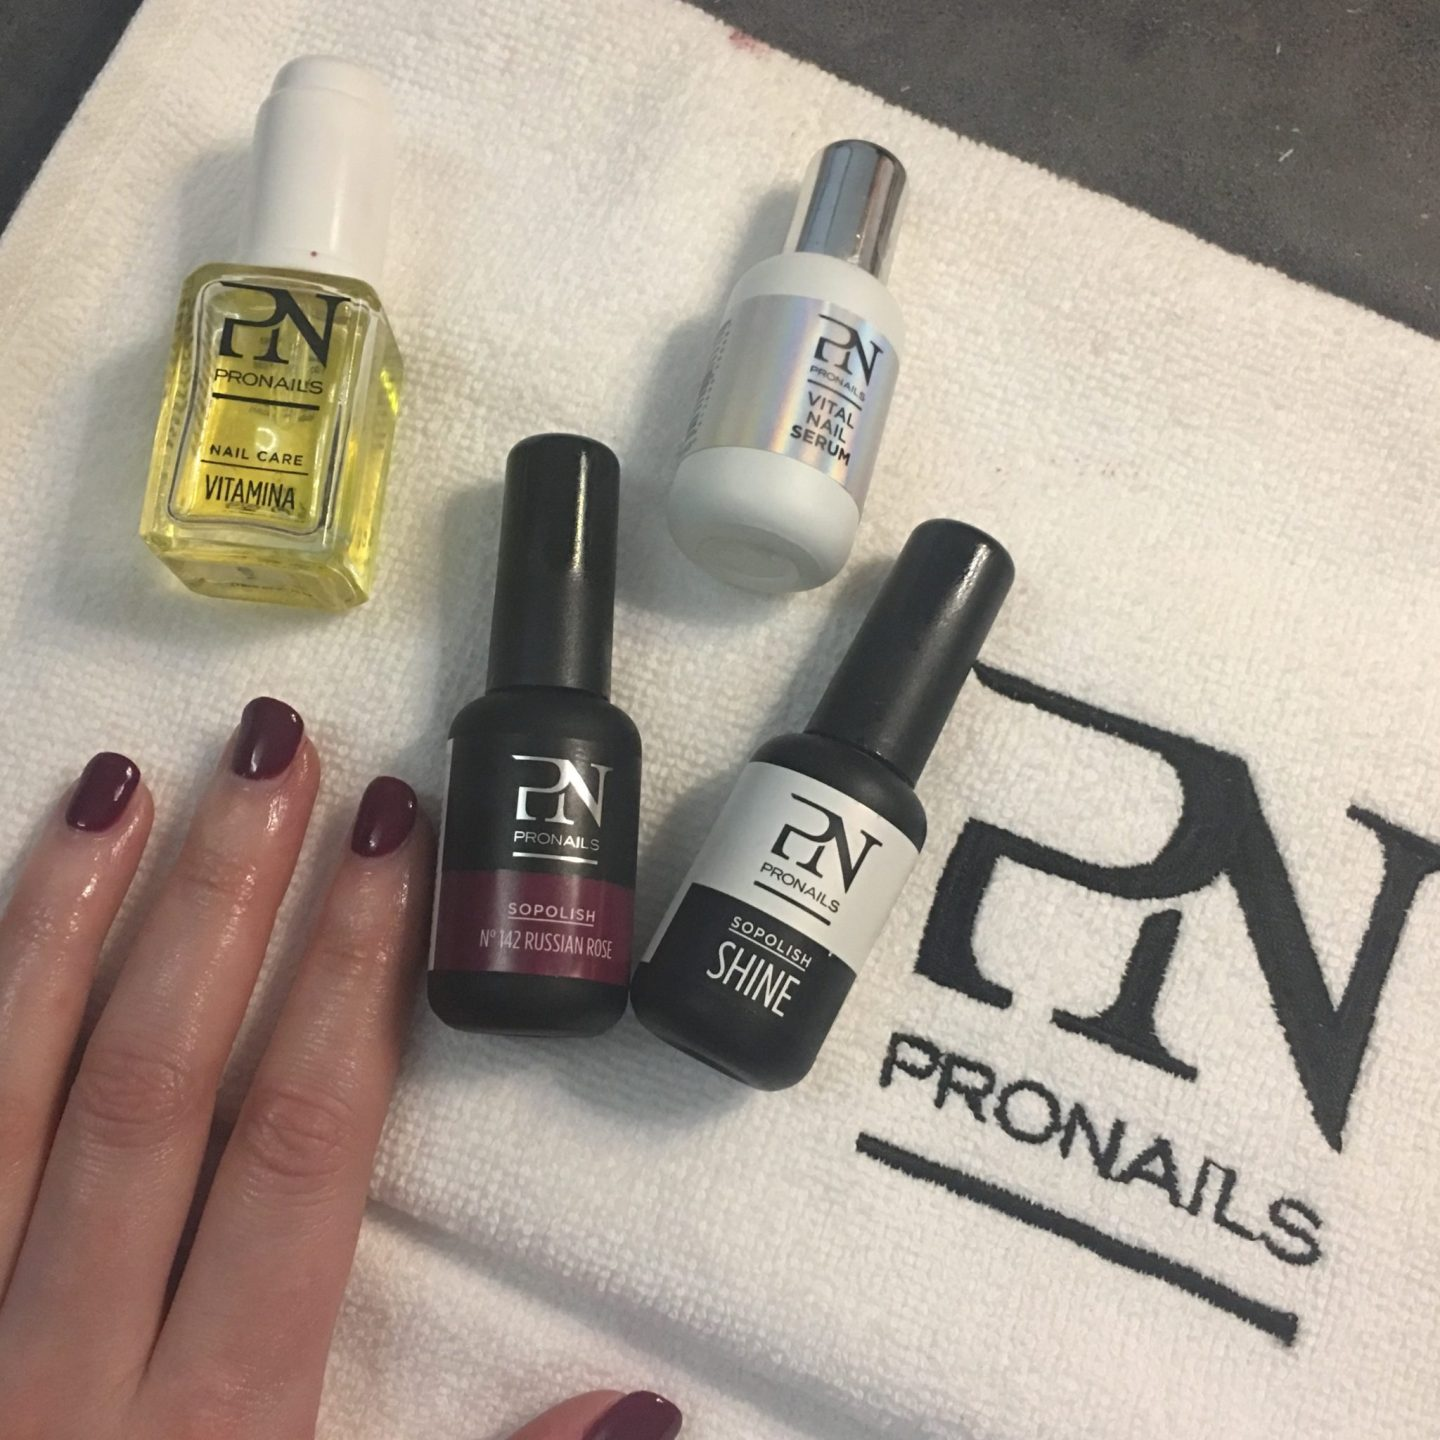 An Evening with Pronails